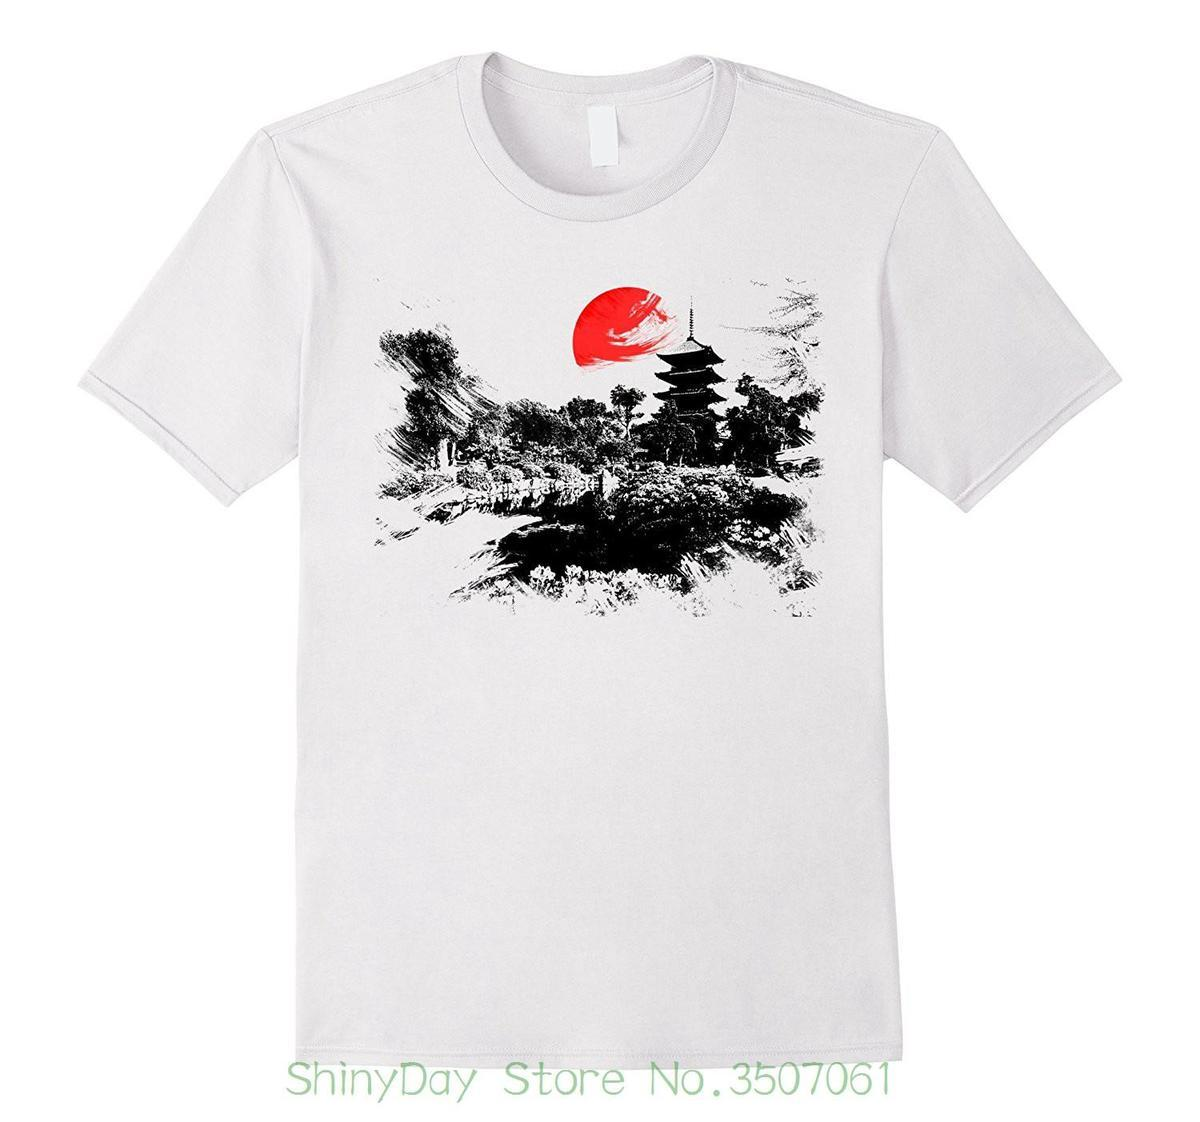 1d586cdea Men'S High Quality Tops Hipster Tees Japan Kyoto Graphical Painterly Japanese  Graphic T Shirt T Shirt Prints T Shirt Designing From Amesion28, ...